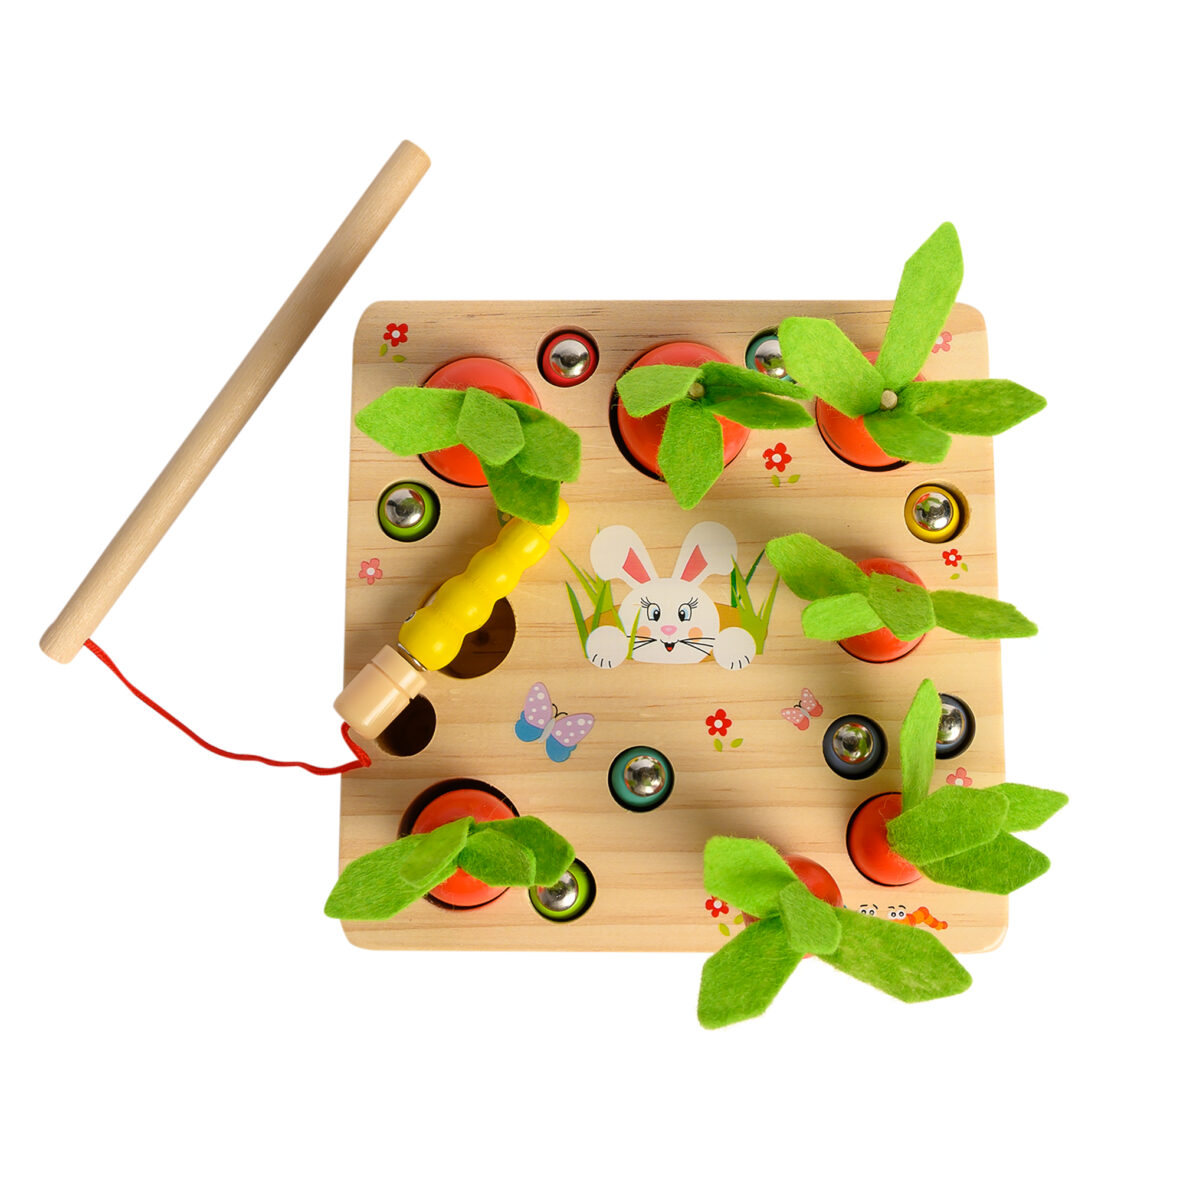 Wooden Pull Out Carrots Game